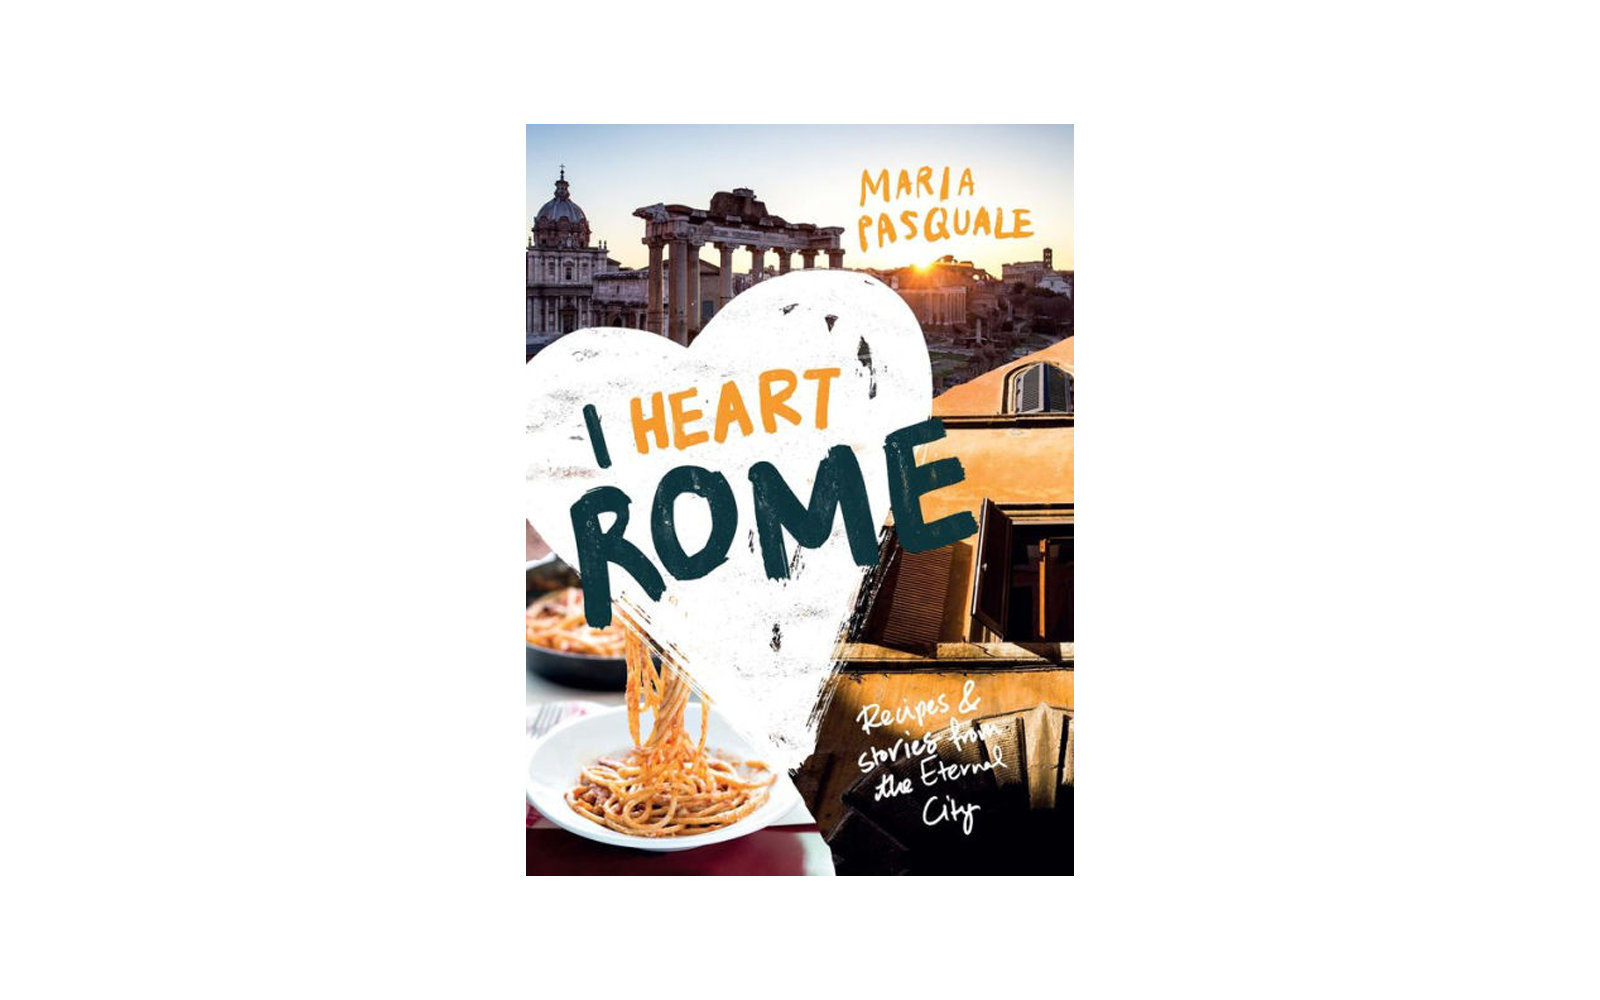 I Heart Rome, by Maria Pasquale